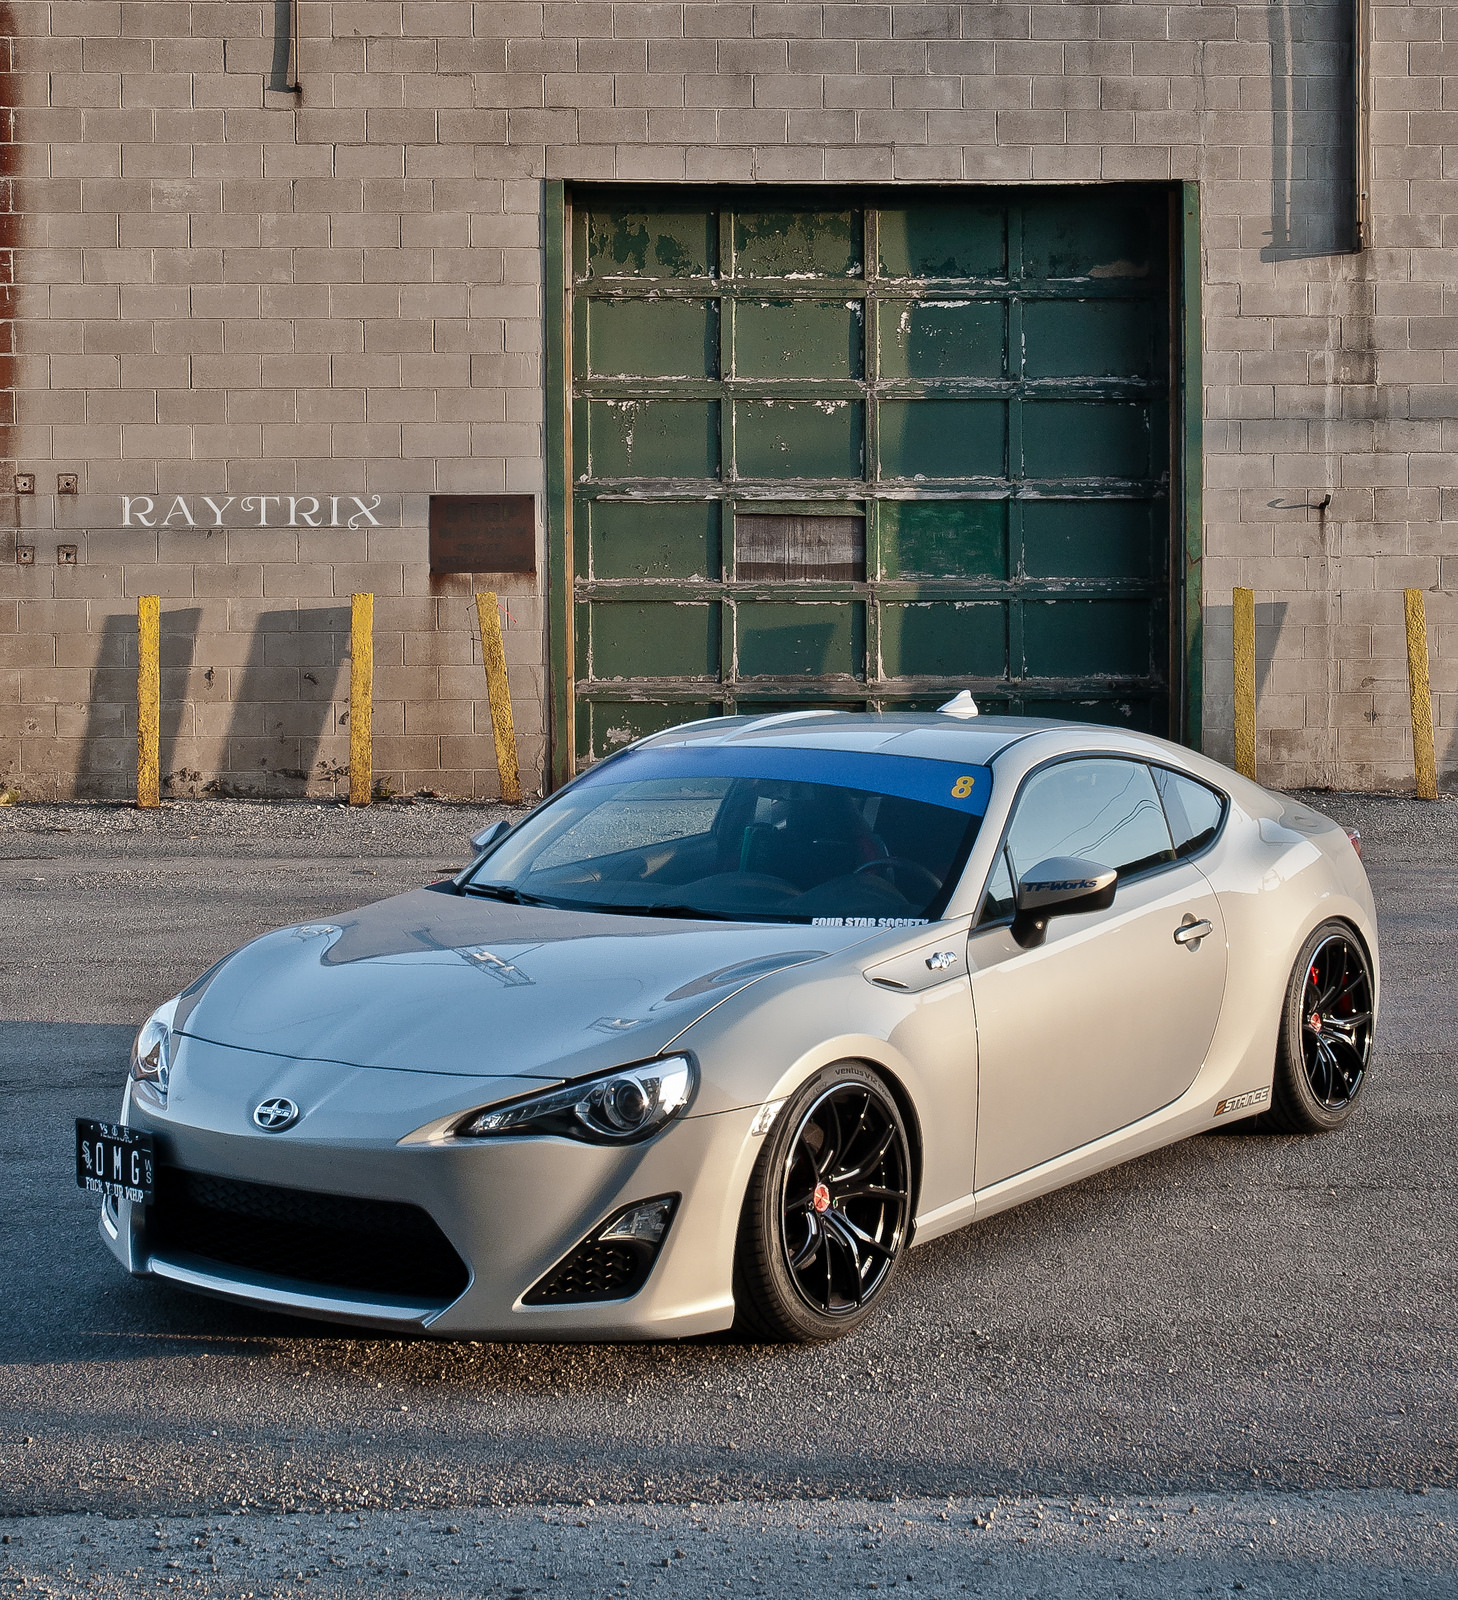 scion fr s custom wheels gram lights 57fxx 18x9 5 et 38 tire size 245 35 r18 x et 255 35 r. Black Bedroom Furniture Sets. Home Design Ideas